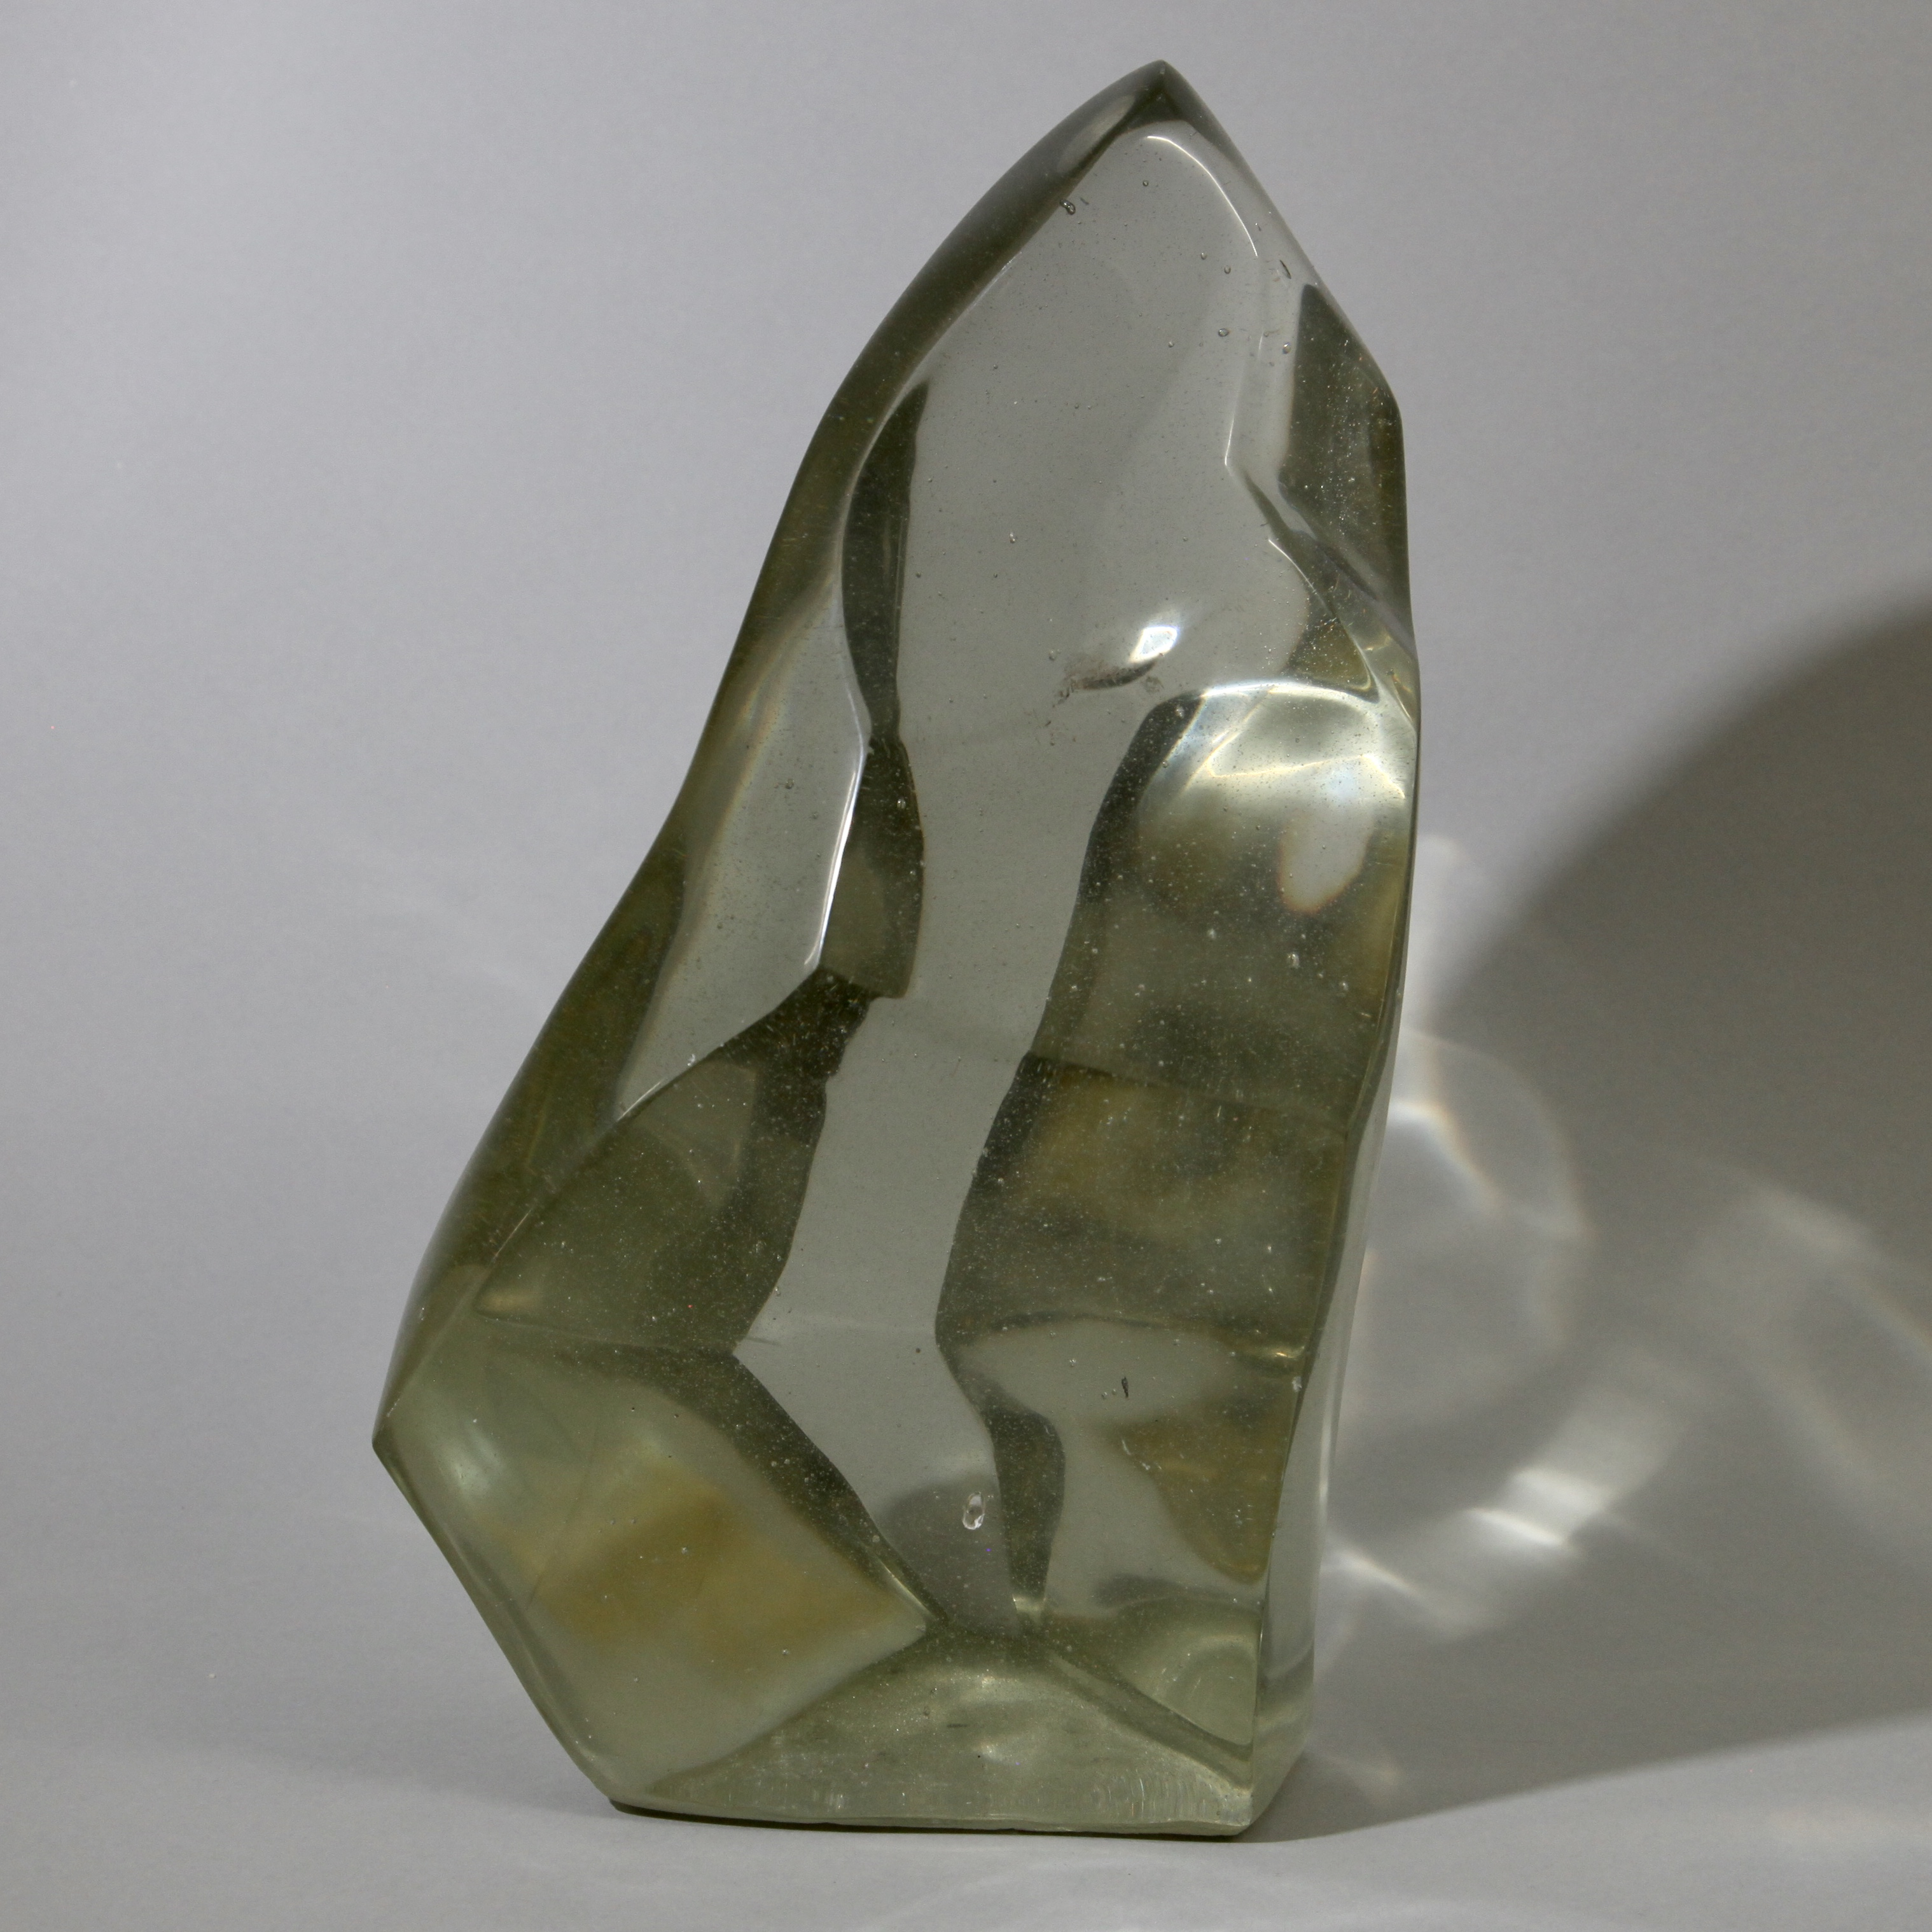 SOLD? - SHOP A CHAMPAGNE COLOURED GLASS SCULPTURE ( No 1076 )